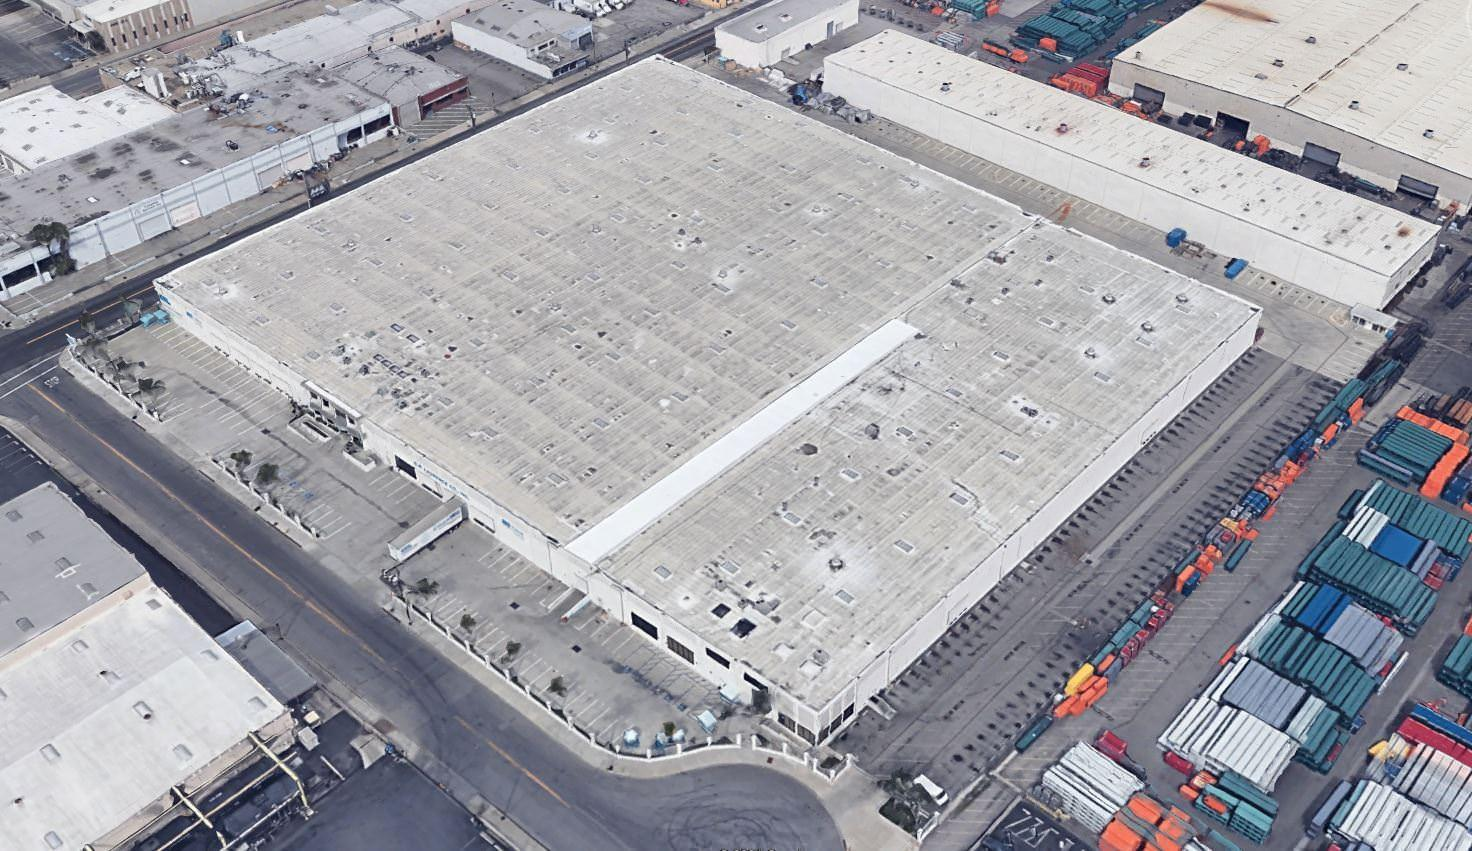 An aerial view of a warehouse that has trucks around it as well as a big parking lot near it.